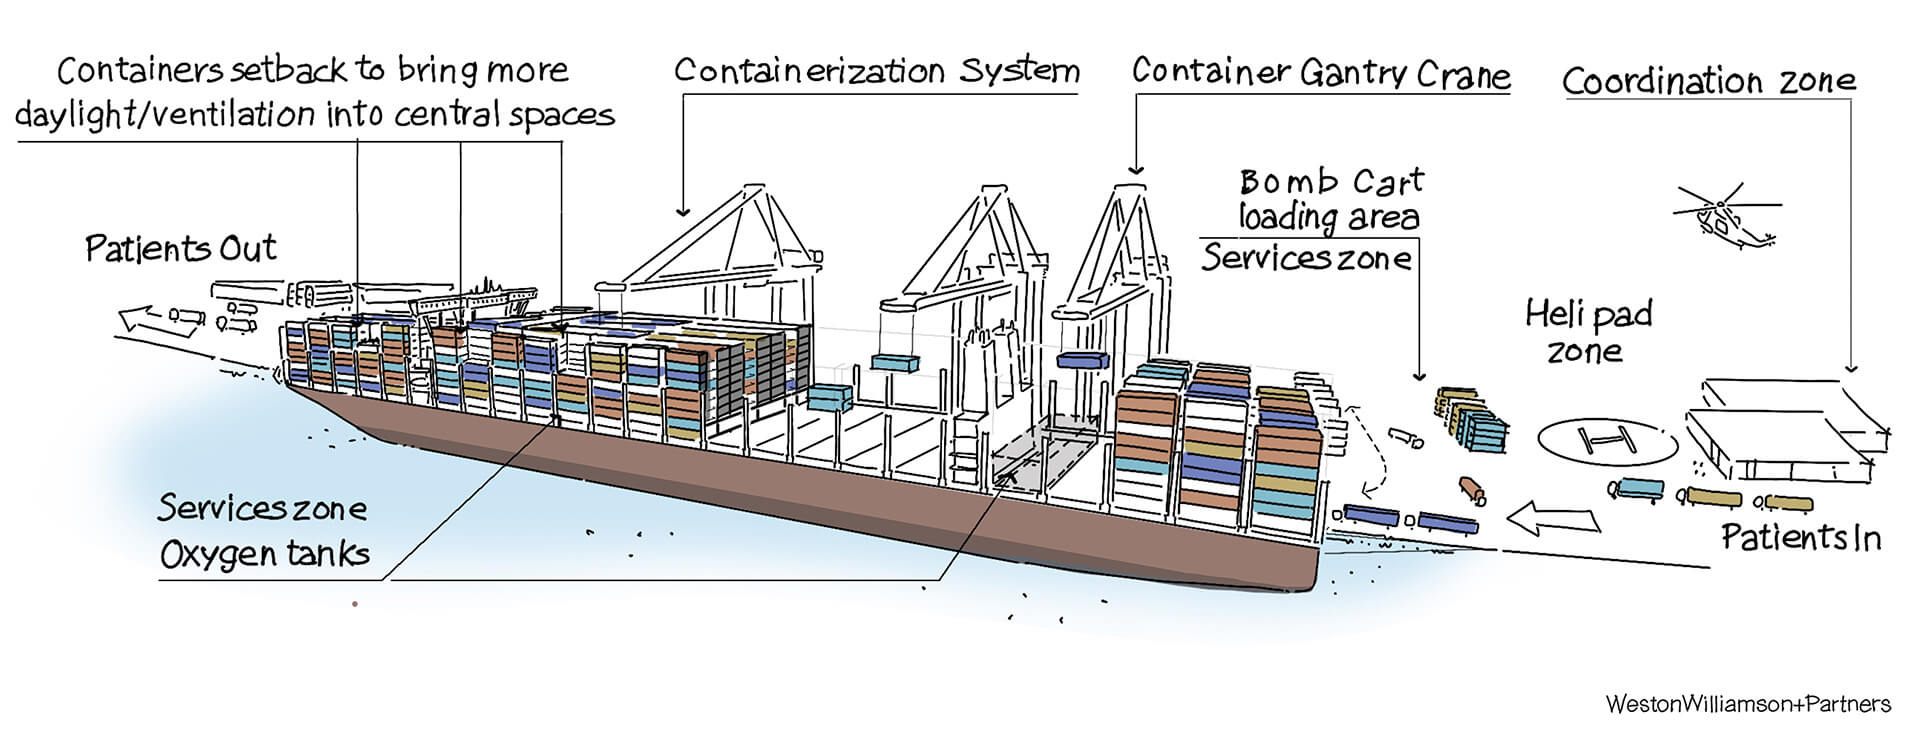 A sketch of how the container ship hospitals can be deployed and made use of | Container ship hospitals by Weston Williamson + Partners | STIRworld